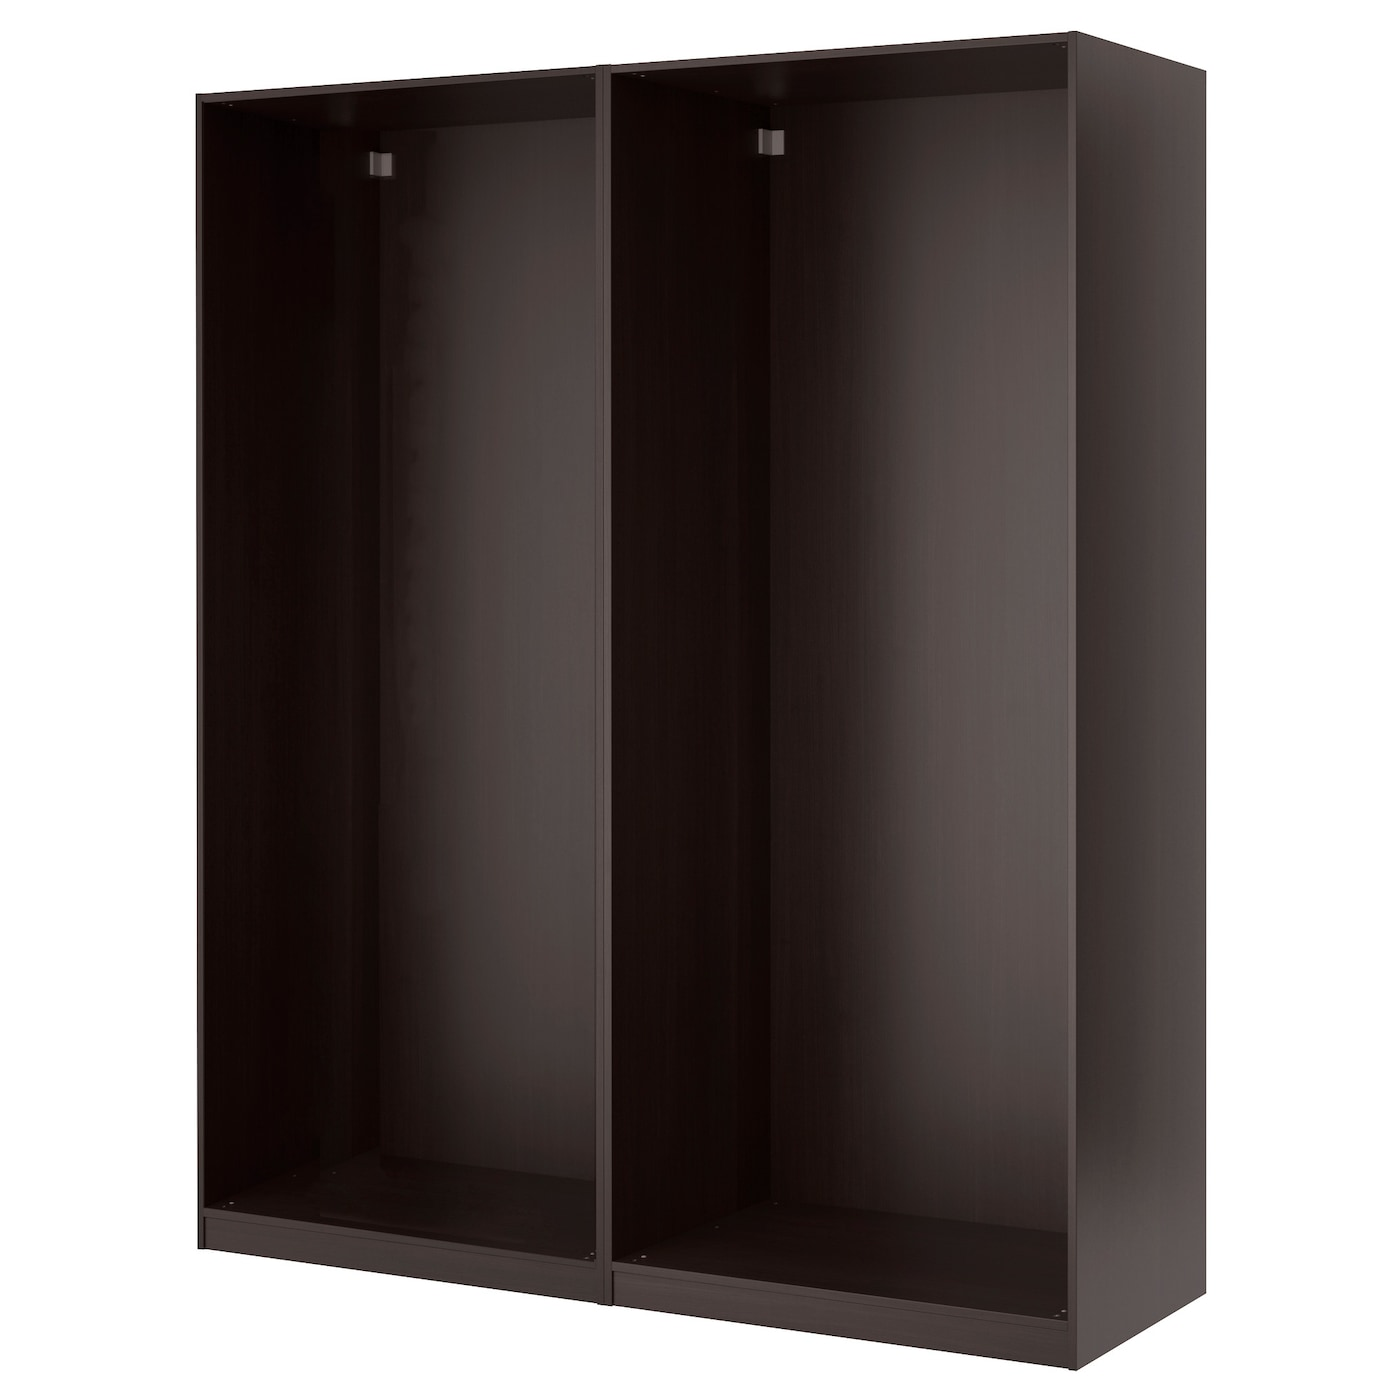 Pax wardrobe with sliding doors black brown auli mirror for Black sliding glass doors